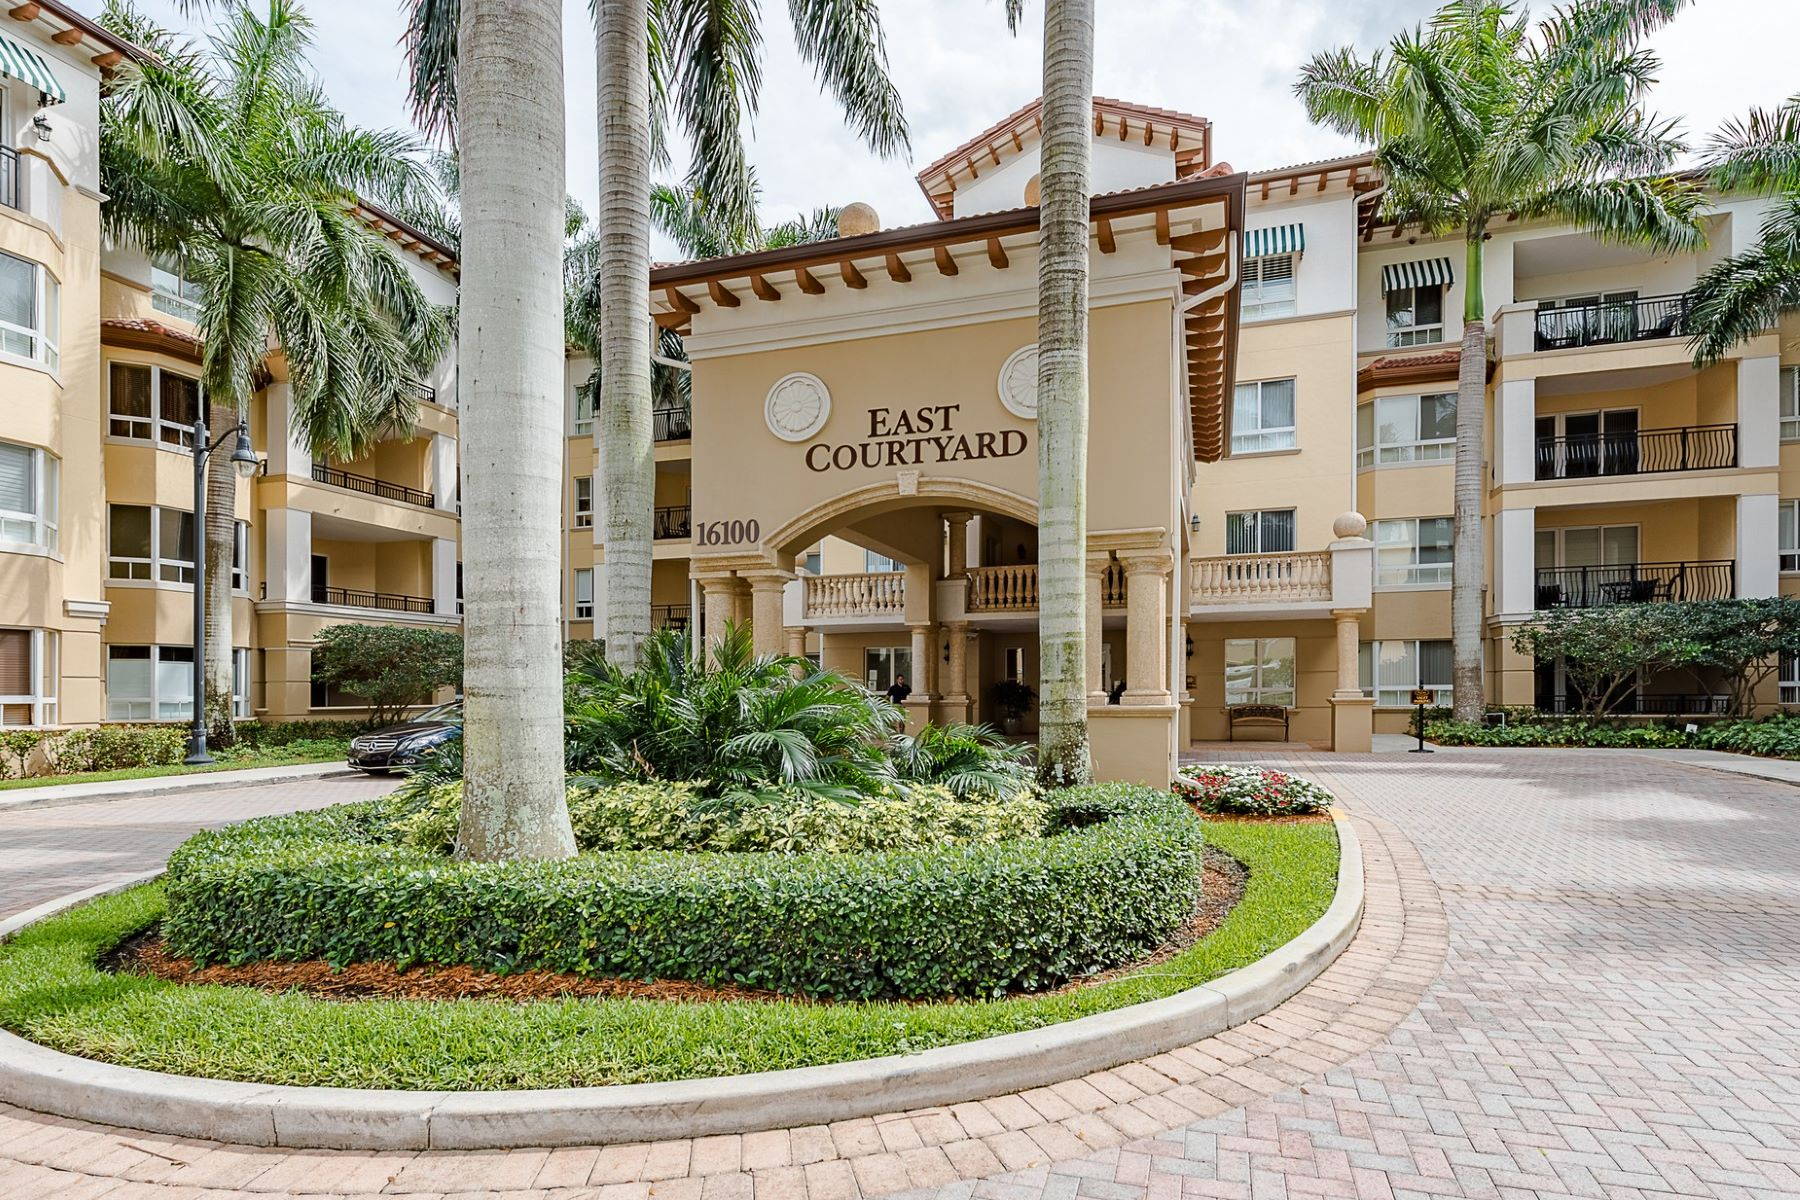 Condominium for Sale at 16100 Emerald estates Dr. # 285 16100 Emerald Estates DR. Unit 285 Weston, Florida, 33331 United States